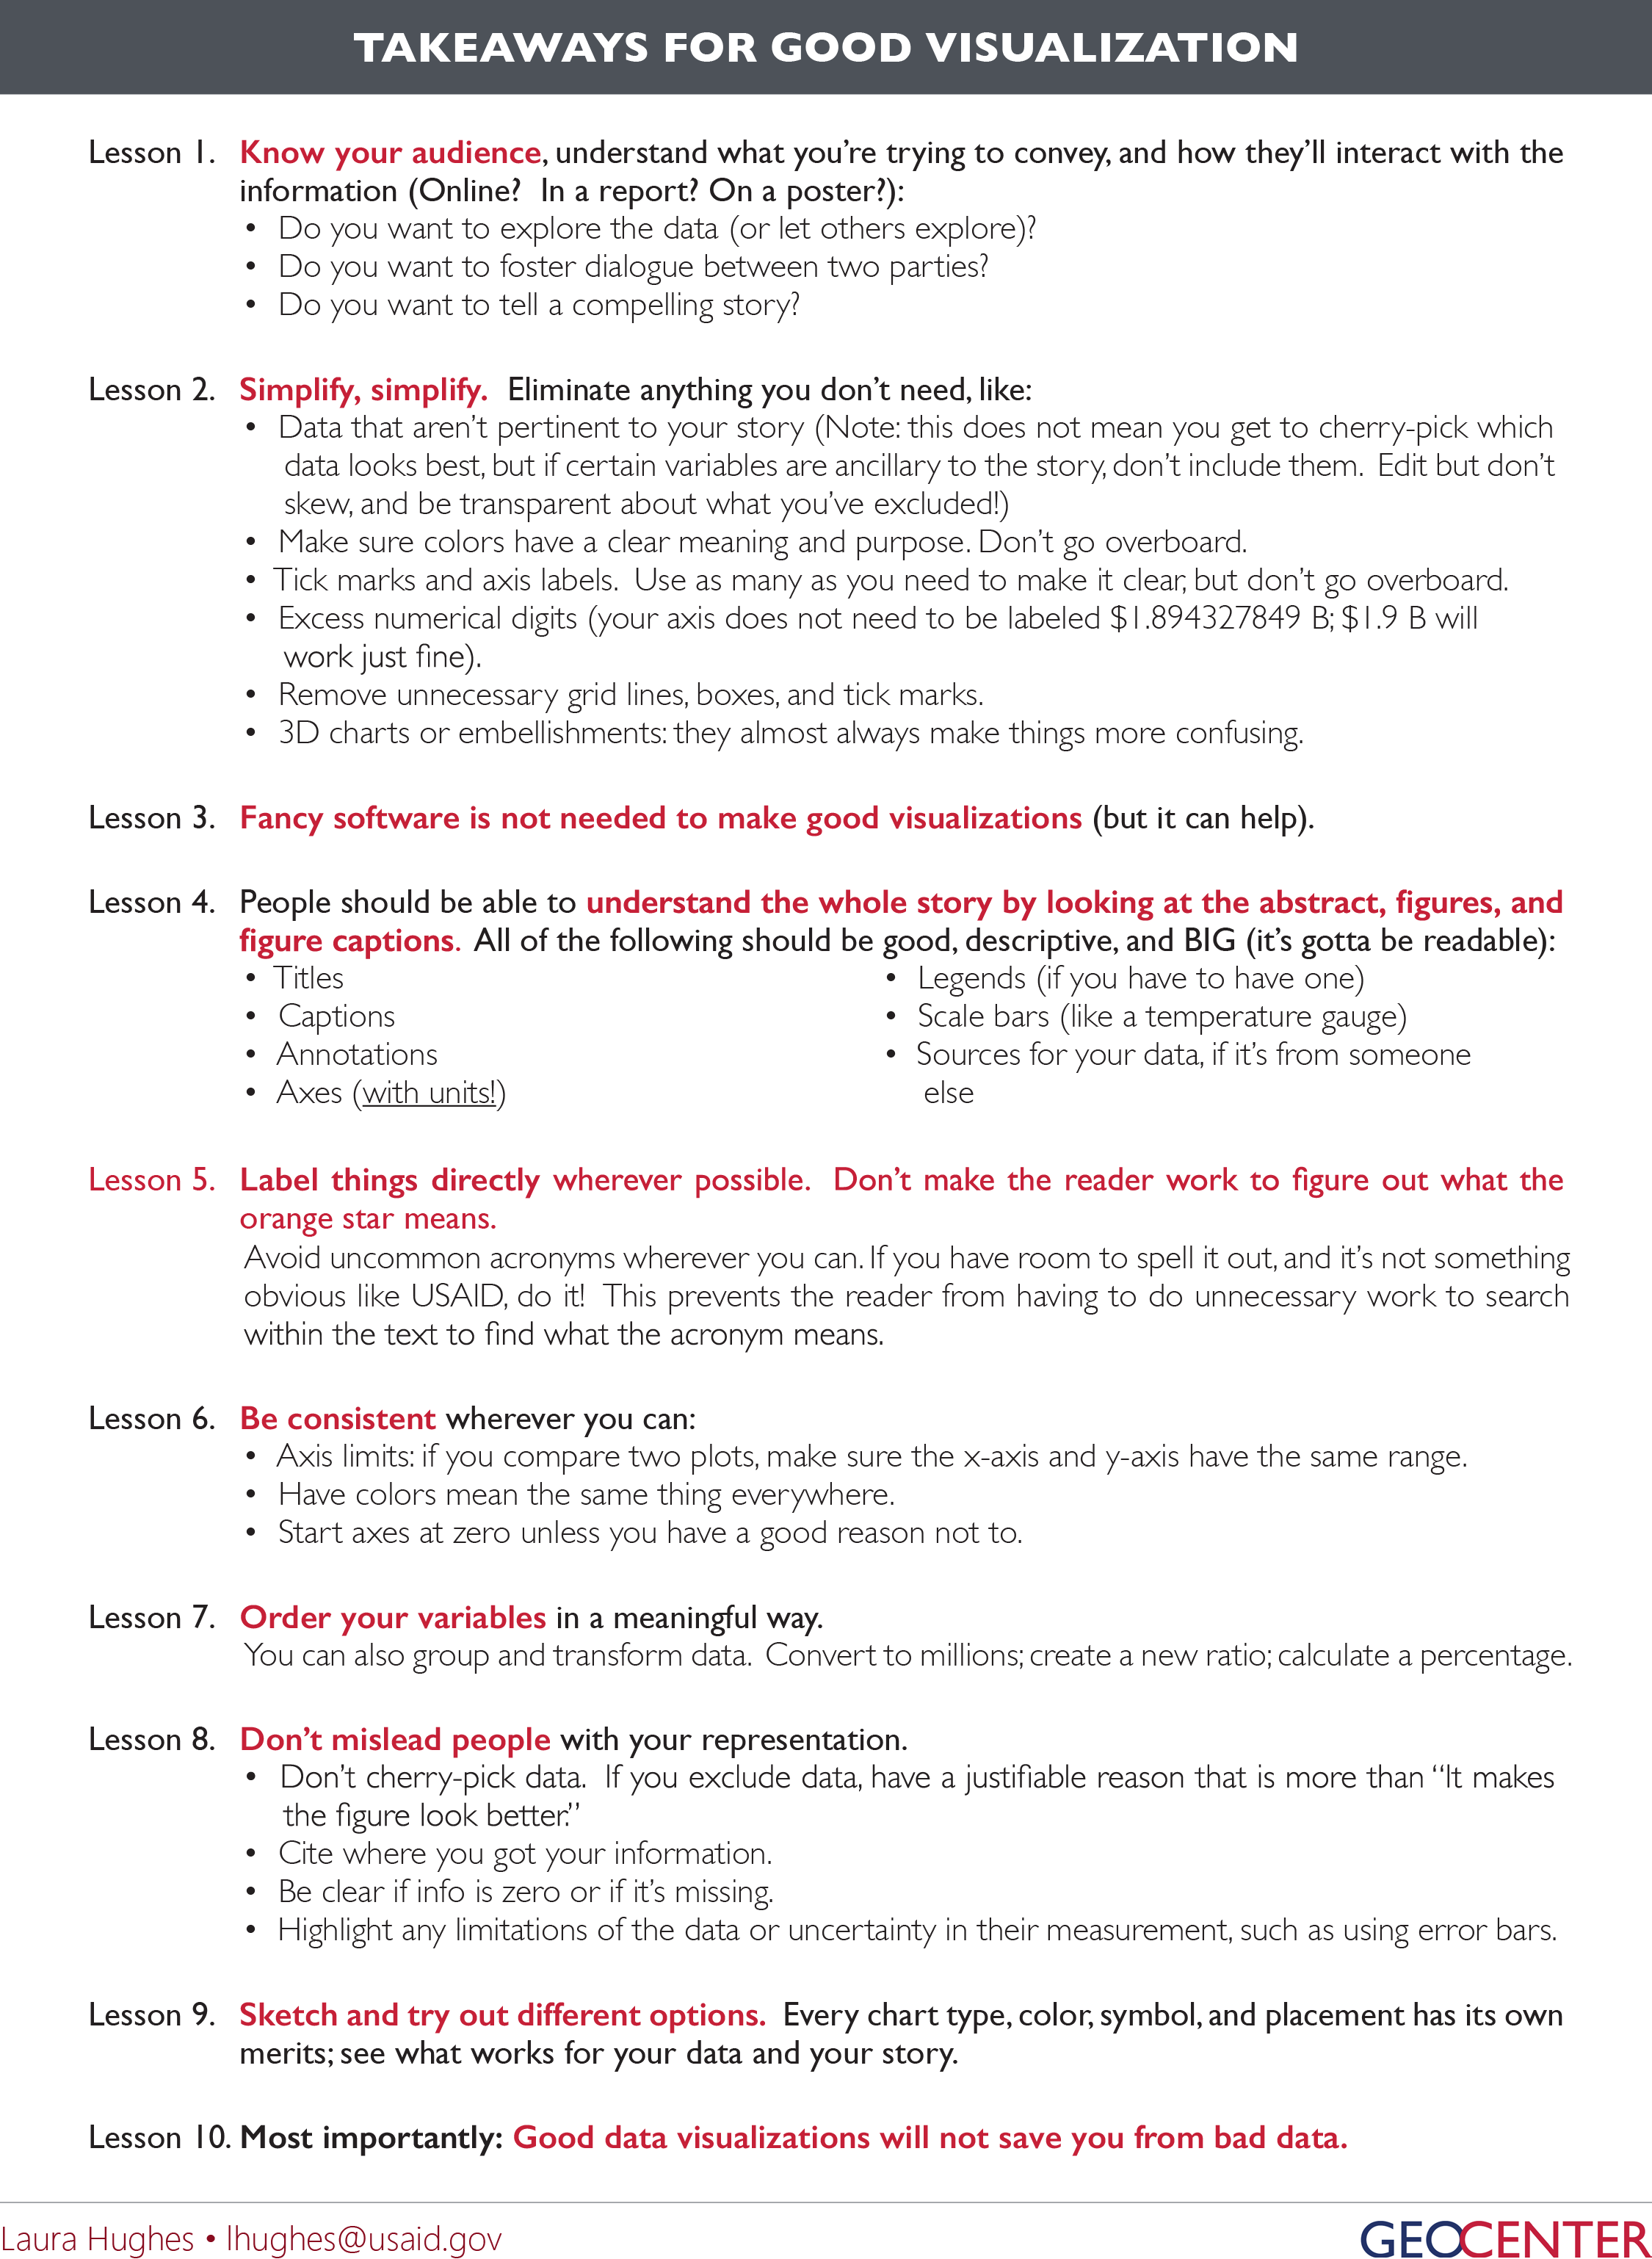 Ten Things To Keep In Mind When Creating A Visualization How To Ask Man  Loses His